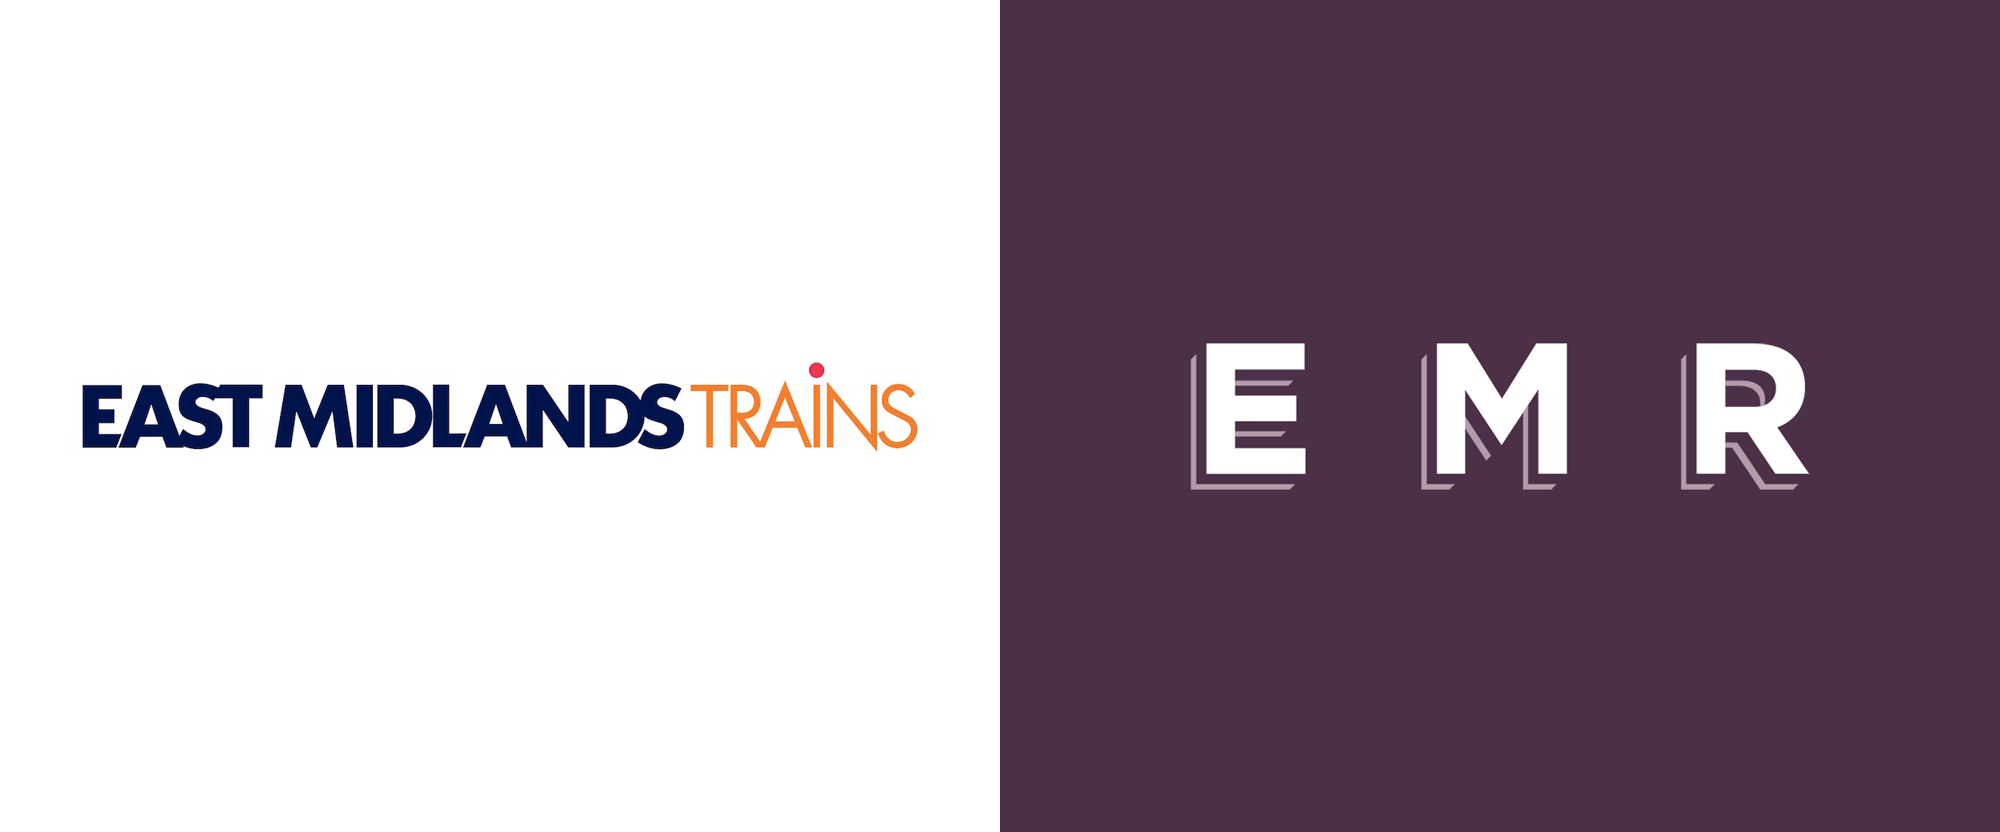 New Logo for East Midlands Railway​